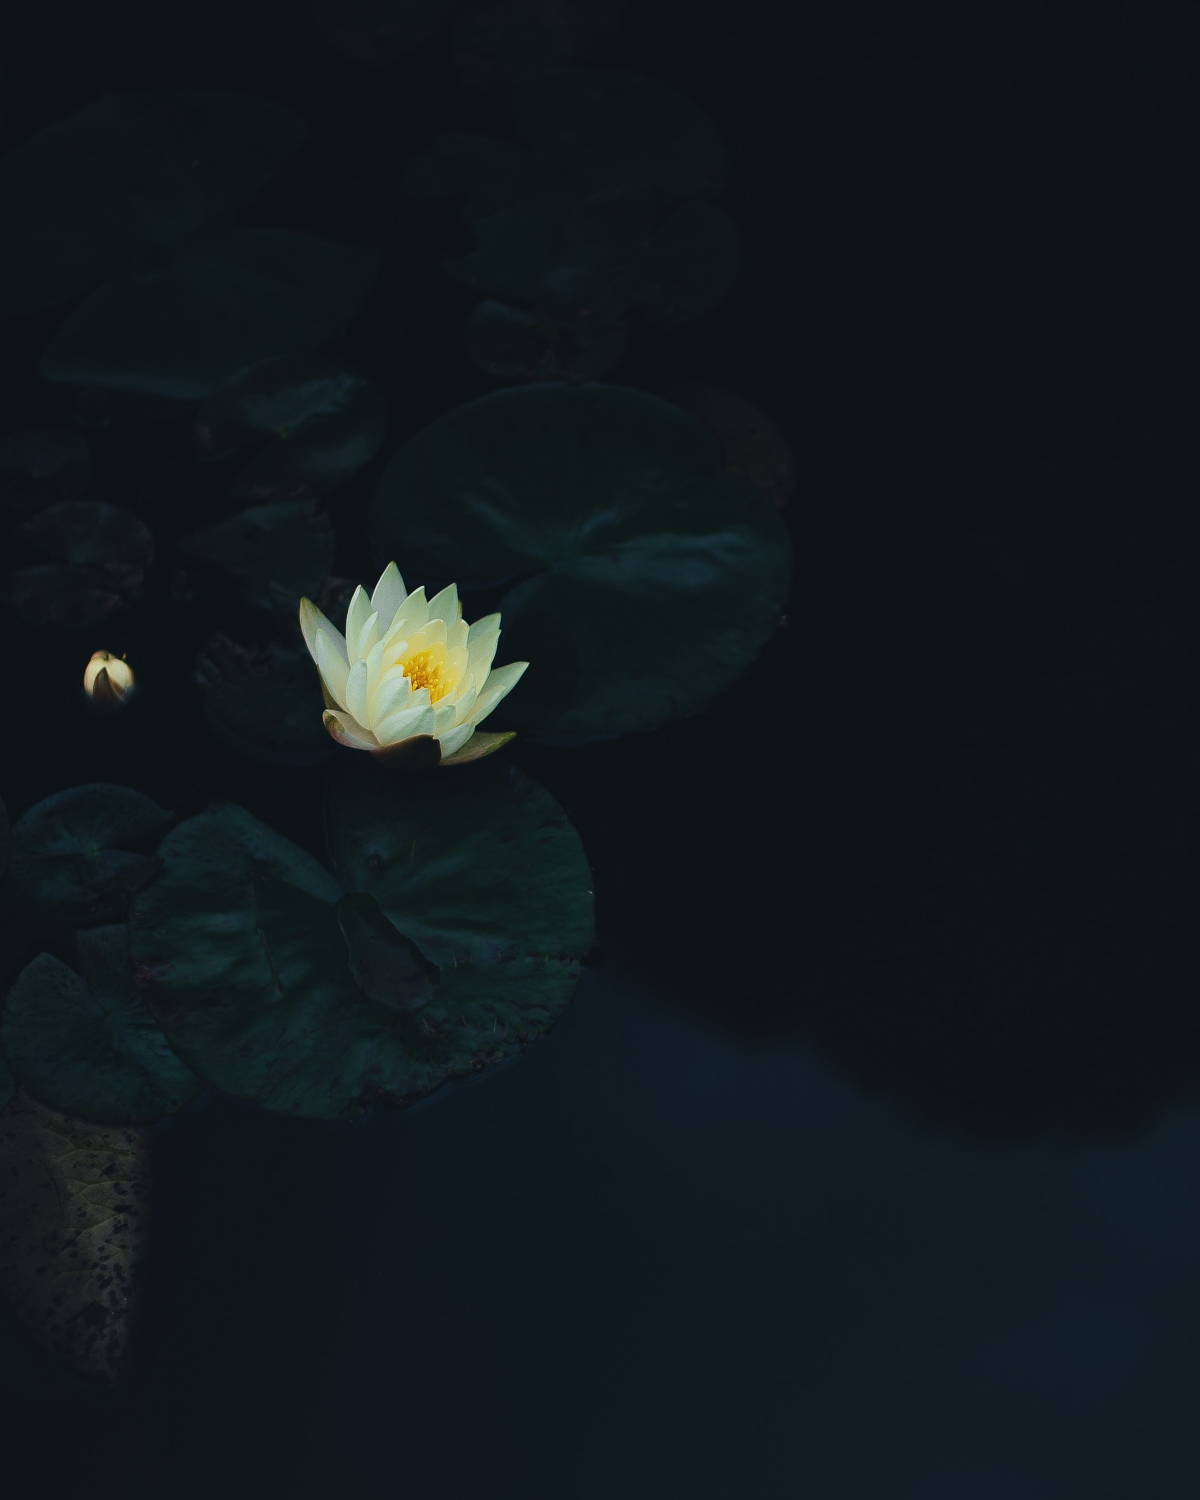 Lily with dark background